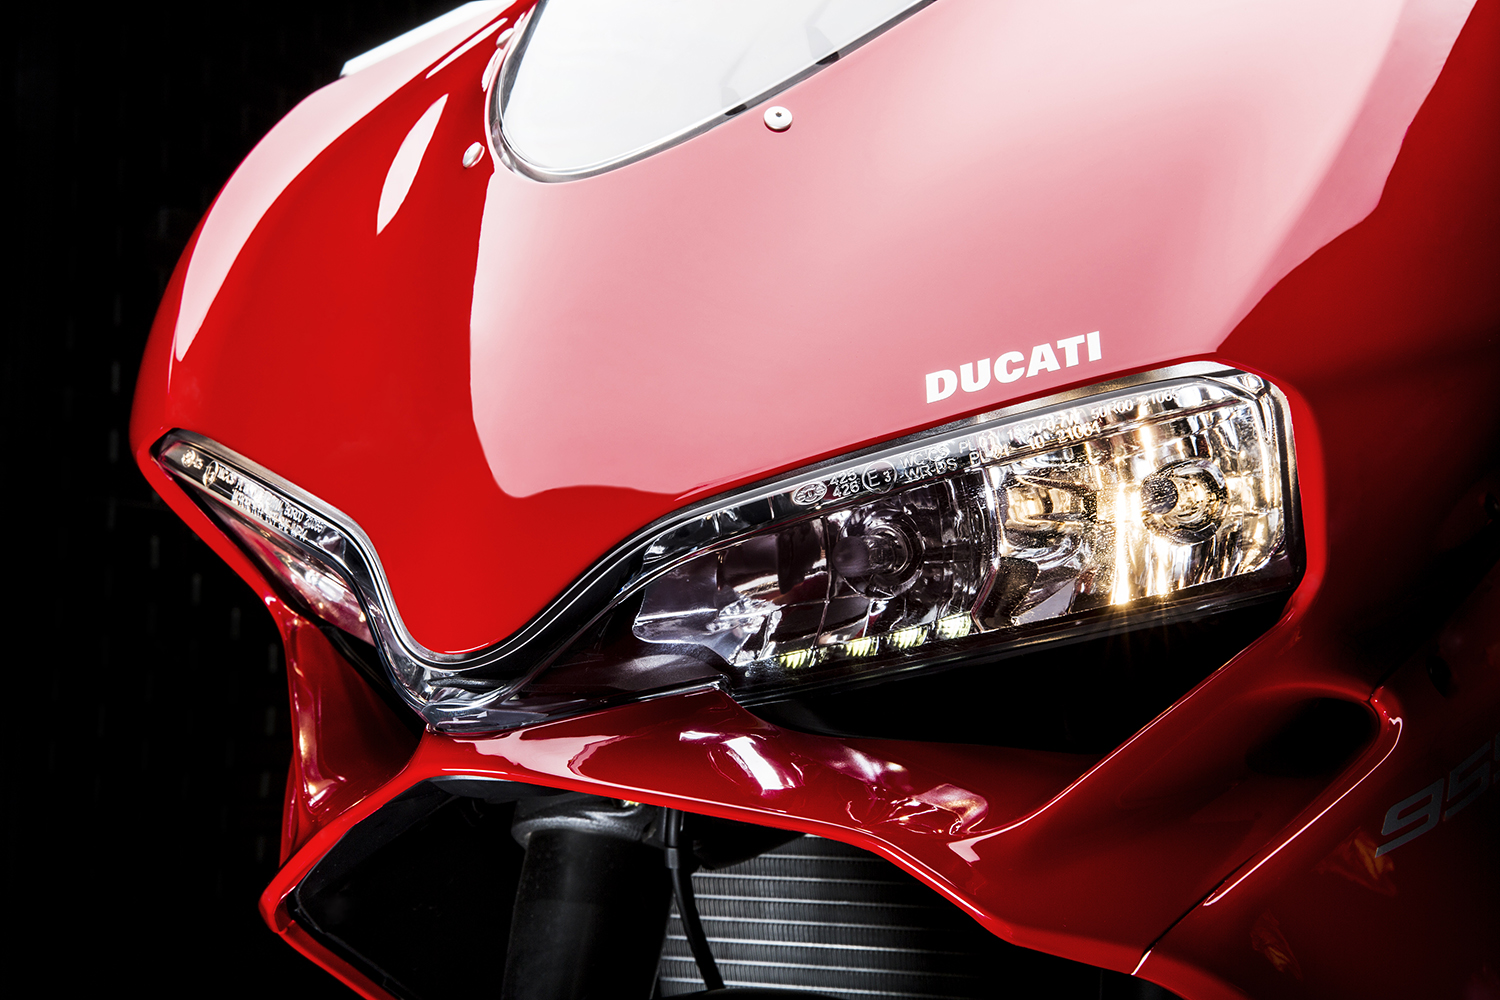 Ducati Panigale 959 launch in Thailand